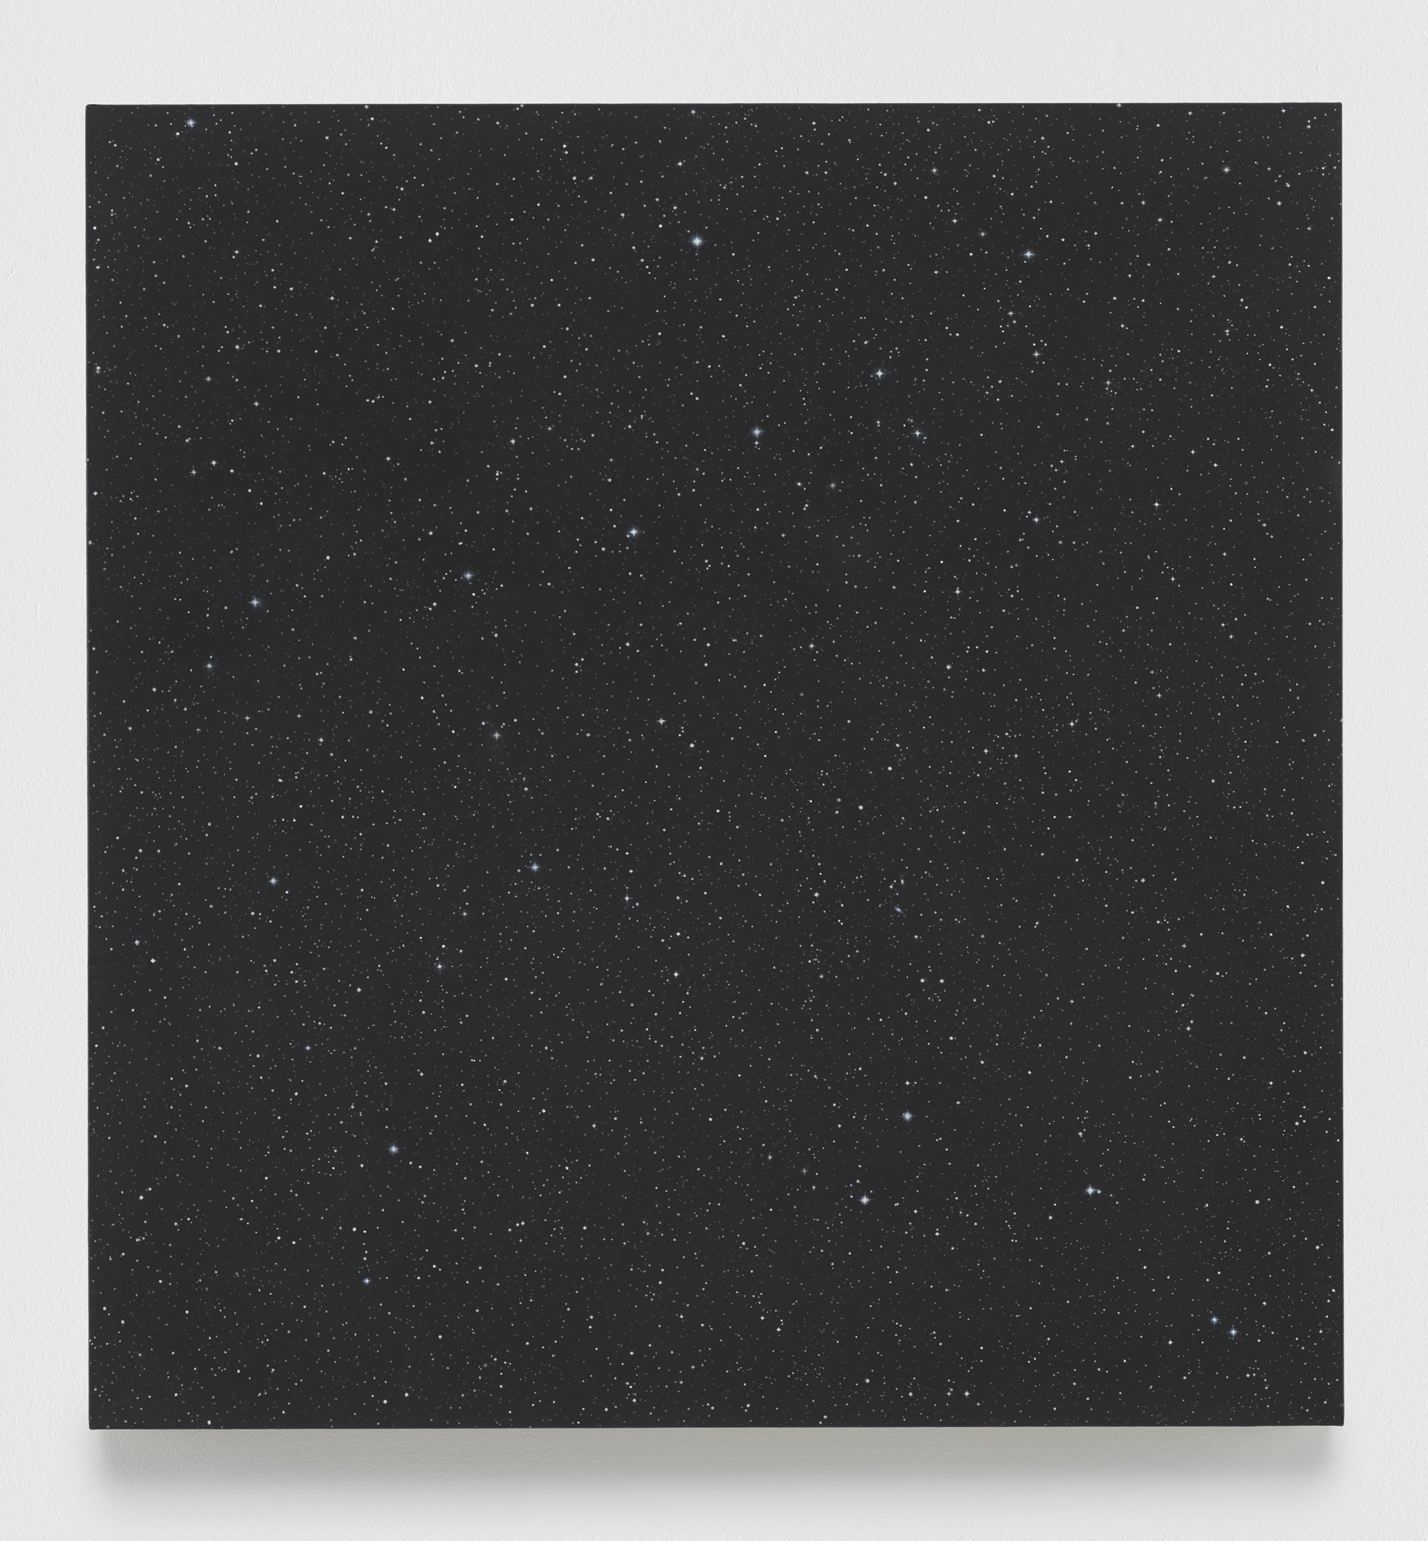 Vija Celmins  Night Sky #24, 2016  Oil on canvas  33 3/4 x 32 inches (85.7 x 81.3 cm)